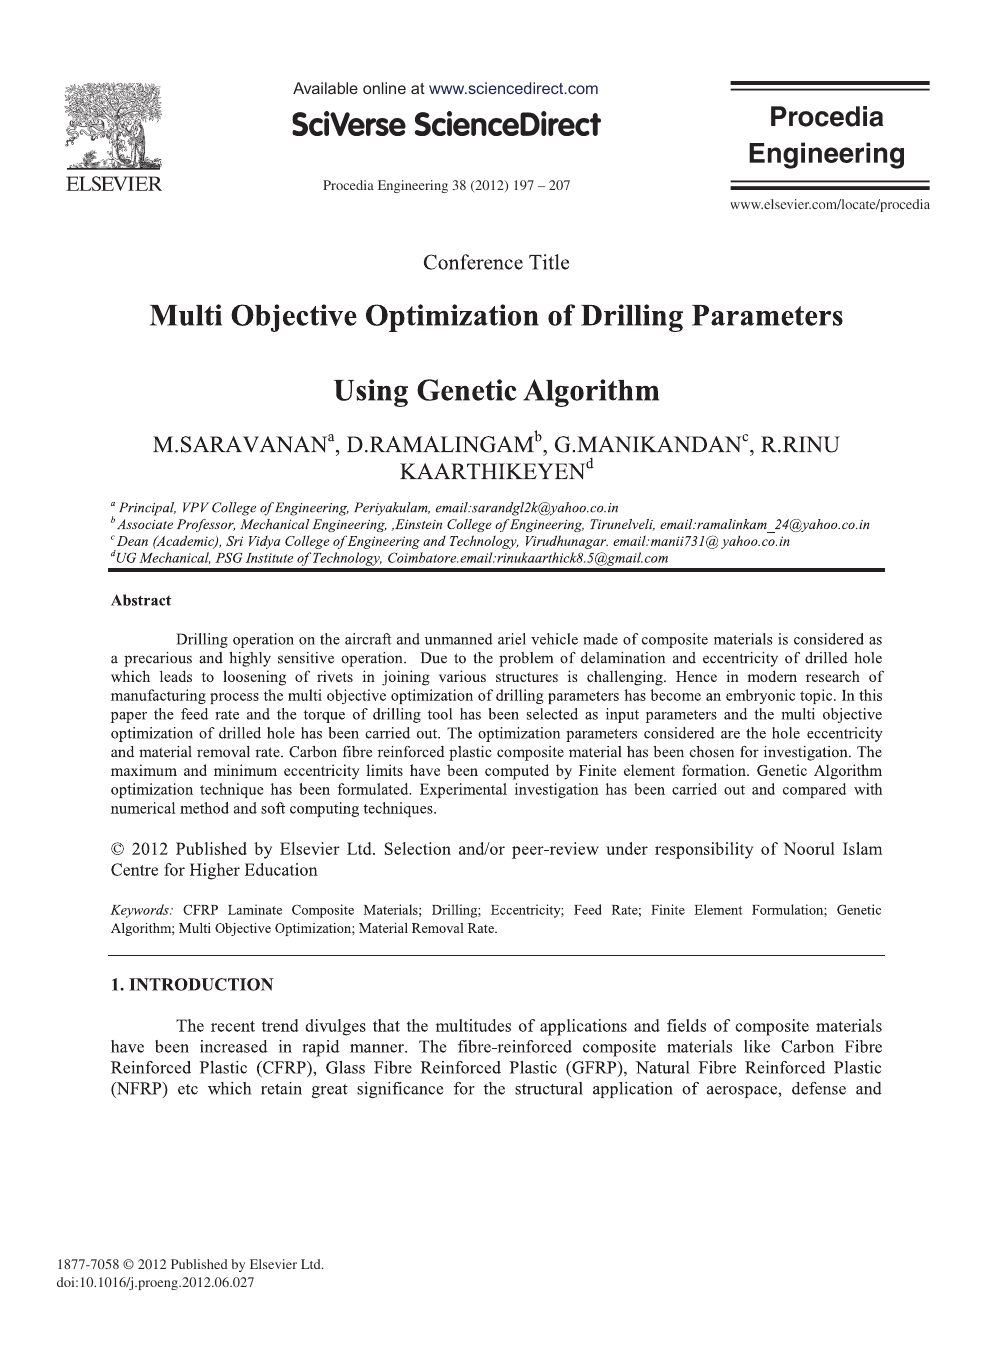 Multi Objective Optimization of Drilling Parameters Using